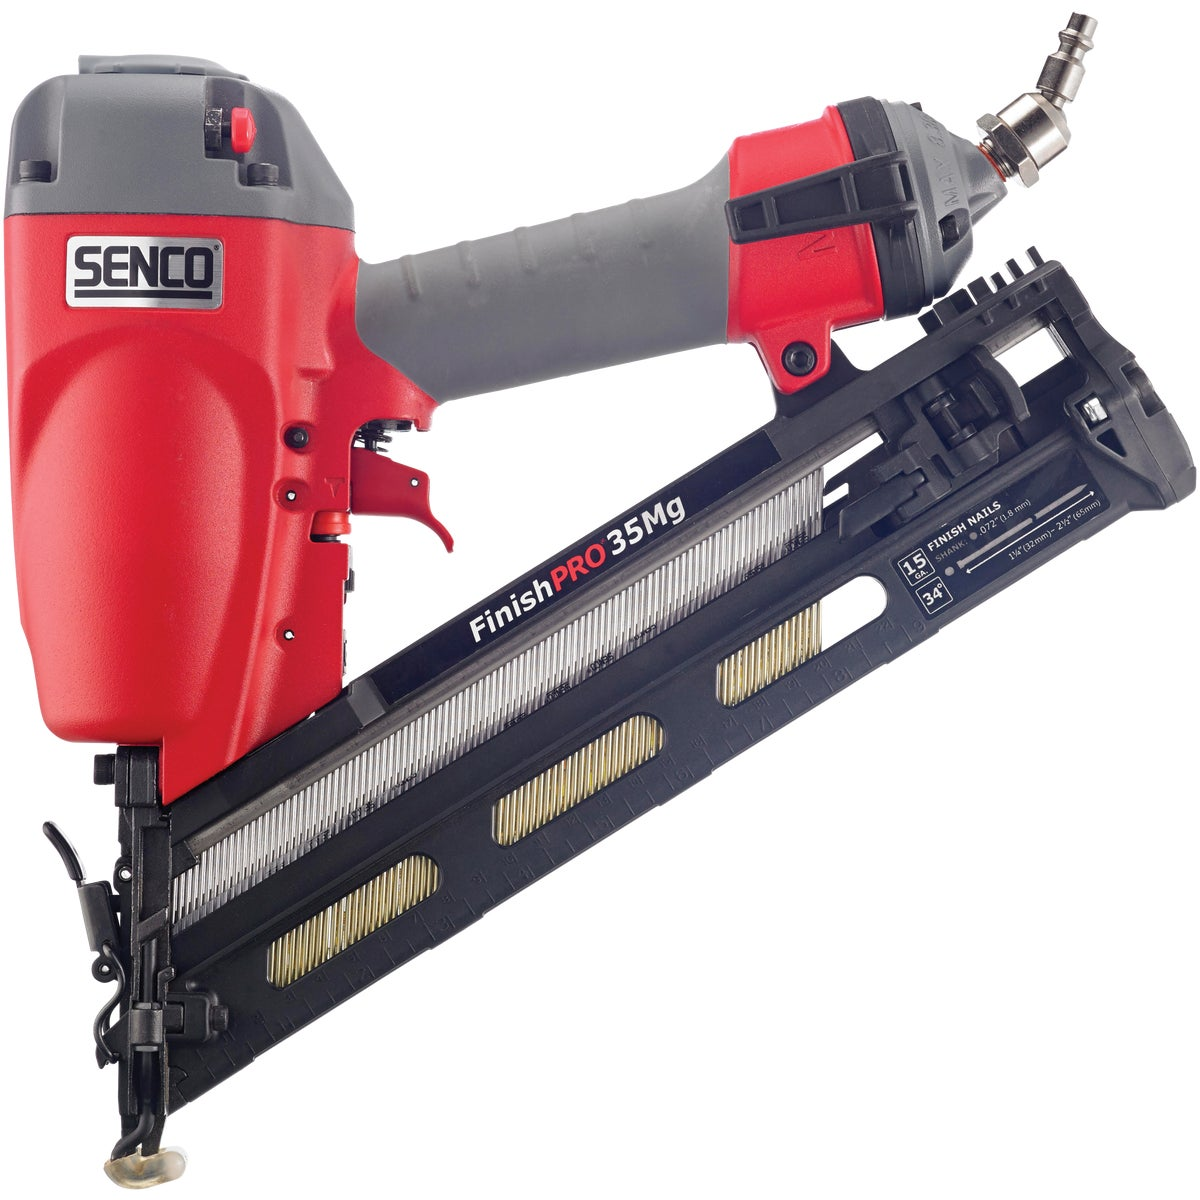 15GA ANGLD FINISH NAILER - 6G0001N by Senco Brands